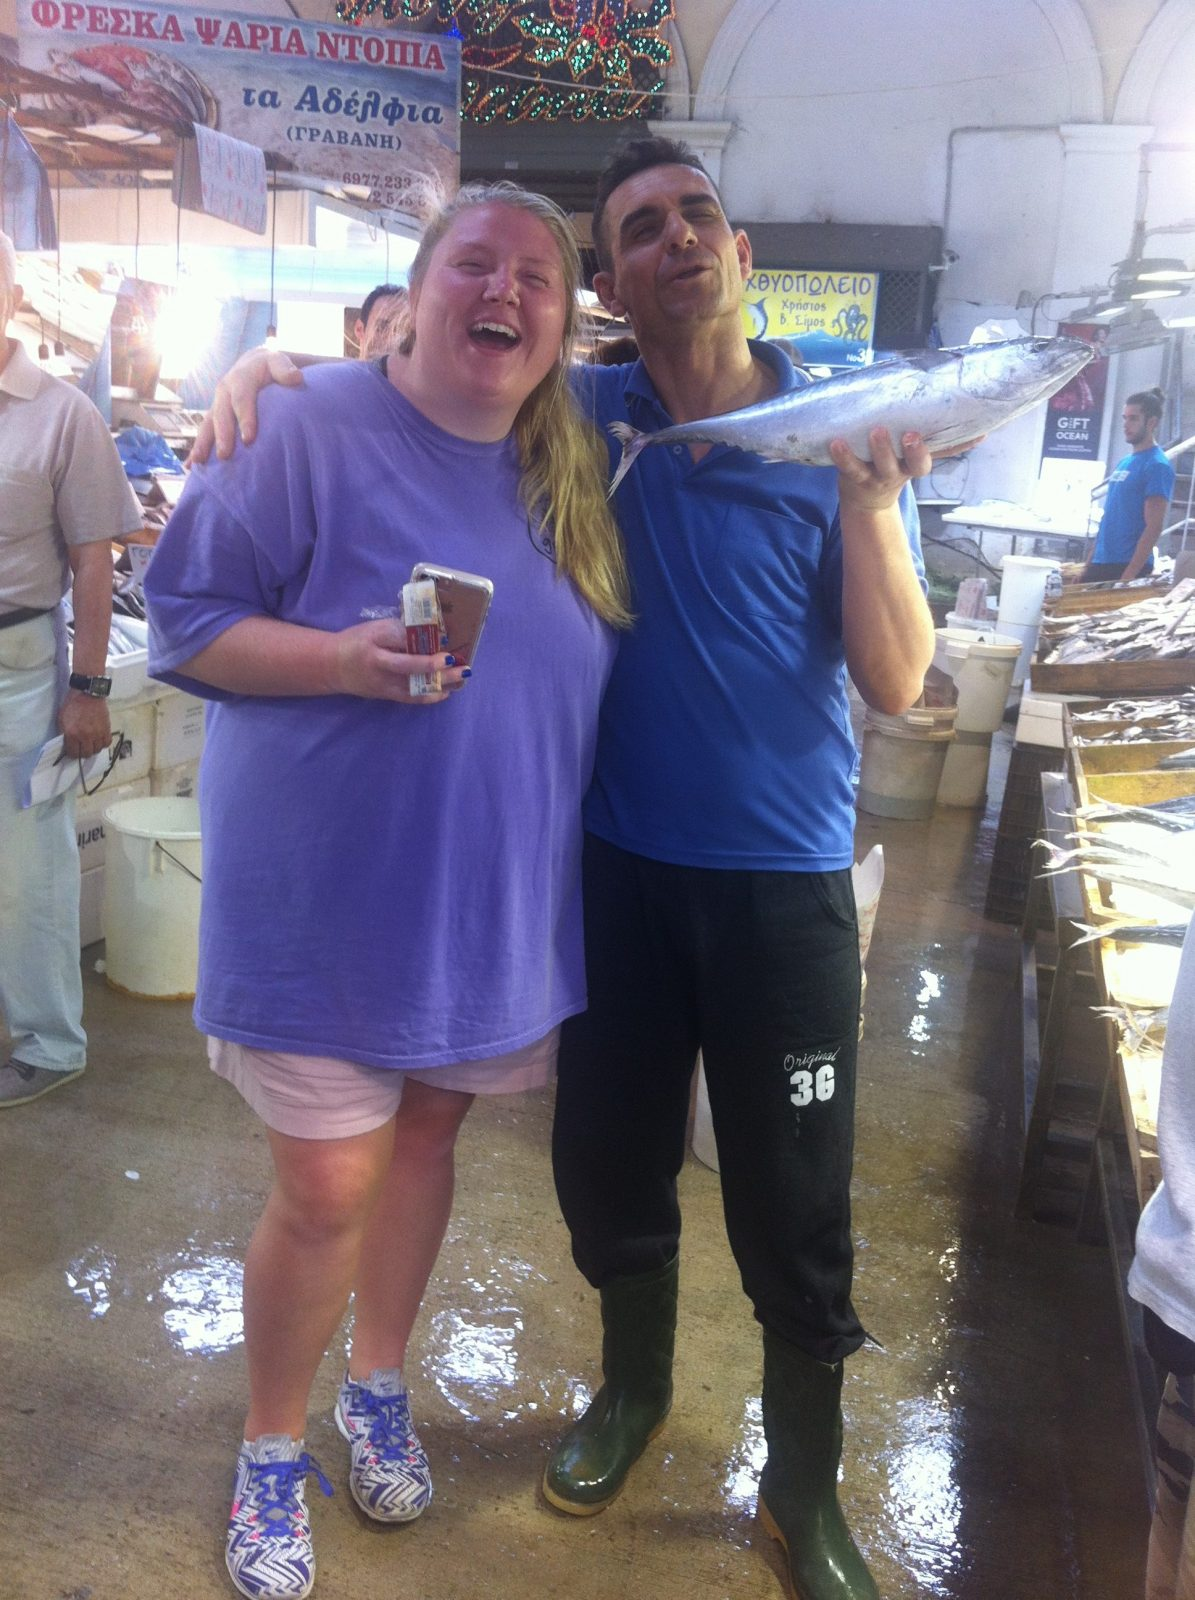 Caroline Bass, amused by the over friendly fish vendors asking to have their photos taken with her!